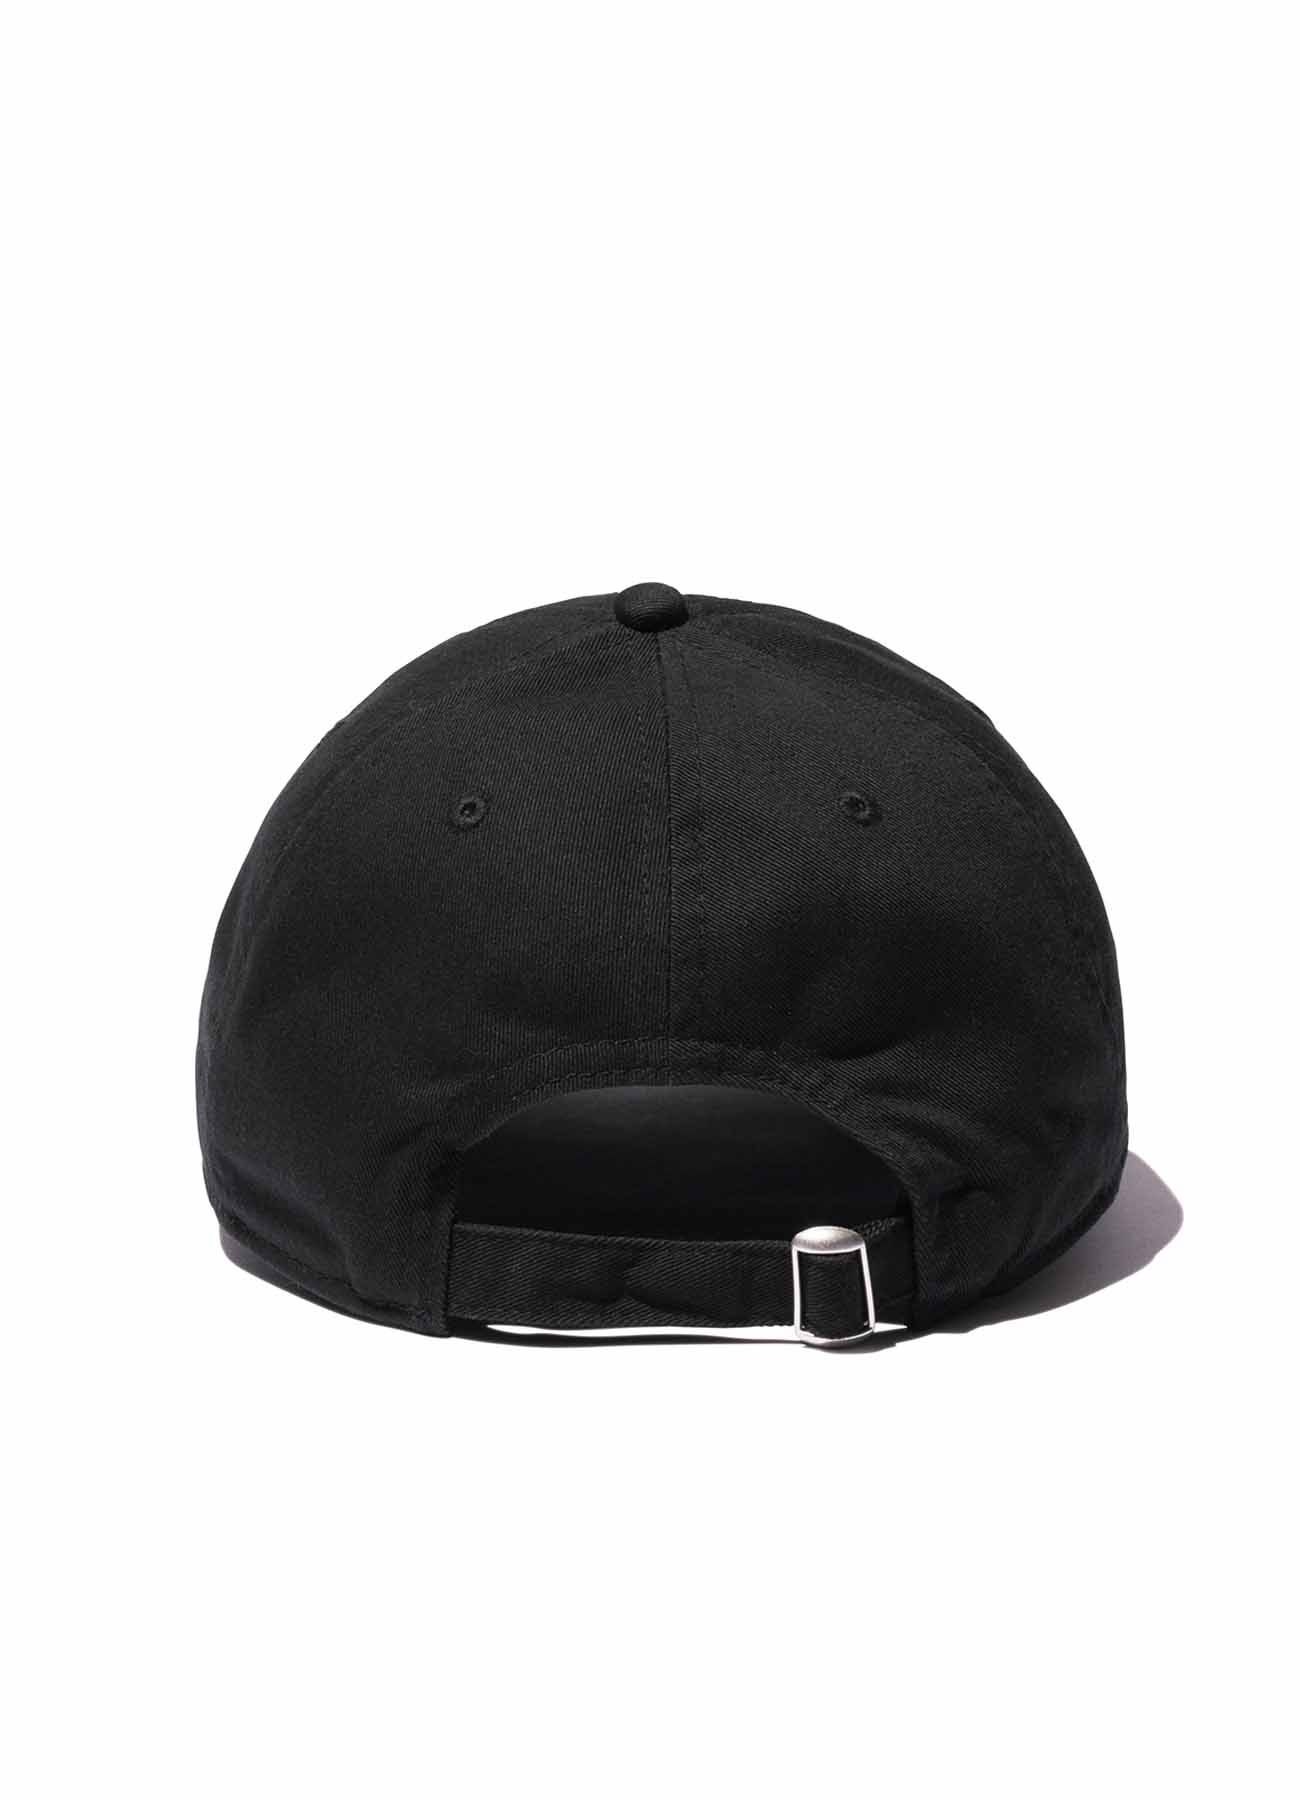 Yohji Yamamoto × New Era COTTON BLACK 9THIRTY YY SMILE LOGO